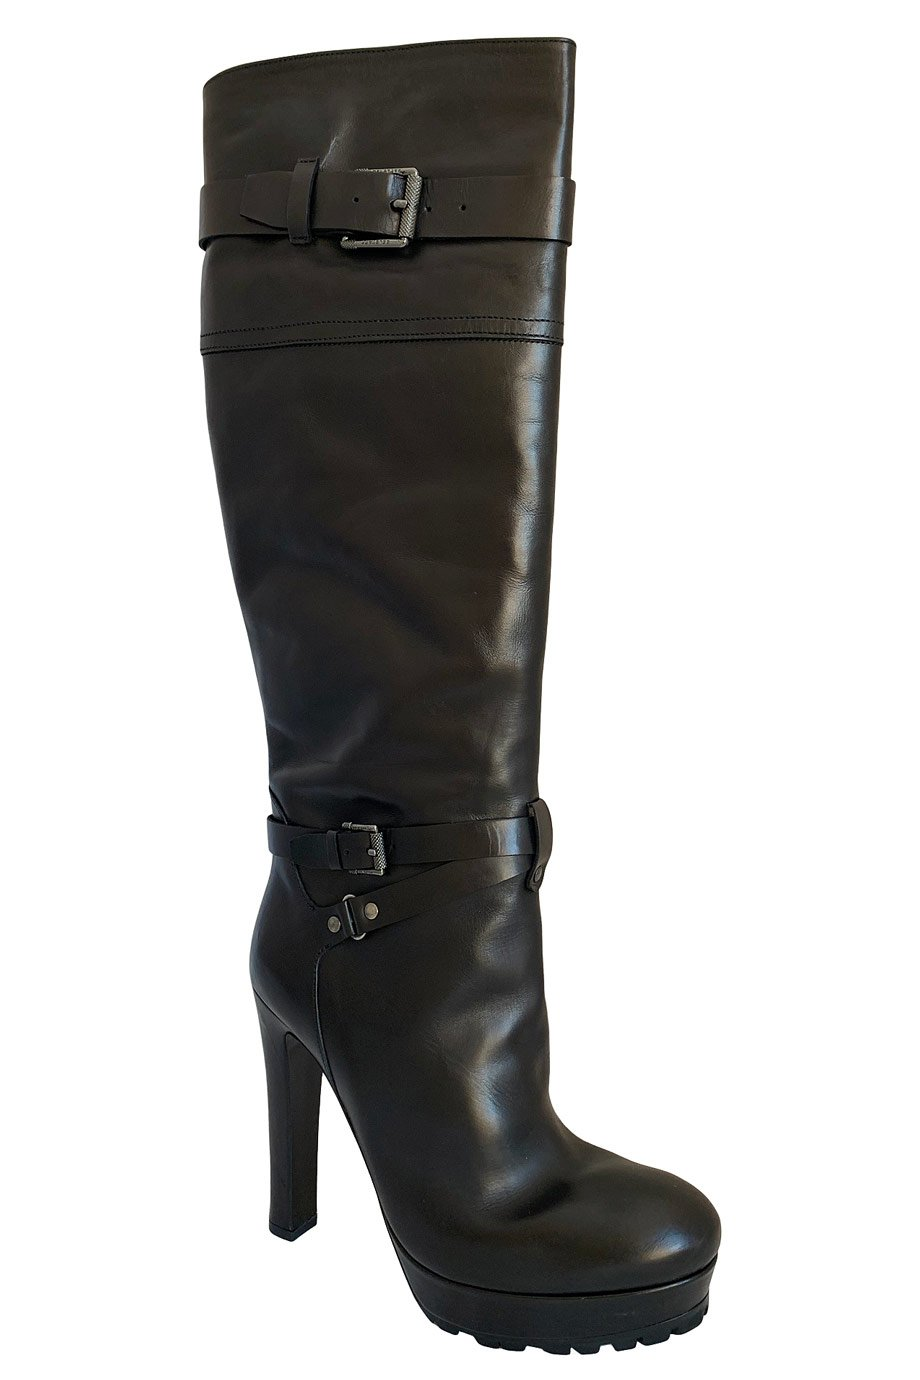 Belstaff Black Leather Barton Platform Knee-High Boots / Sz 39